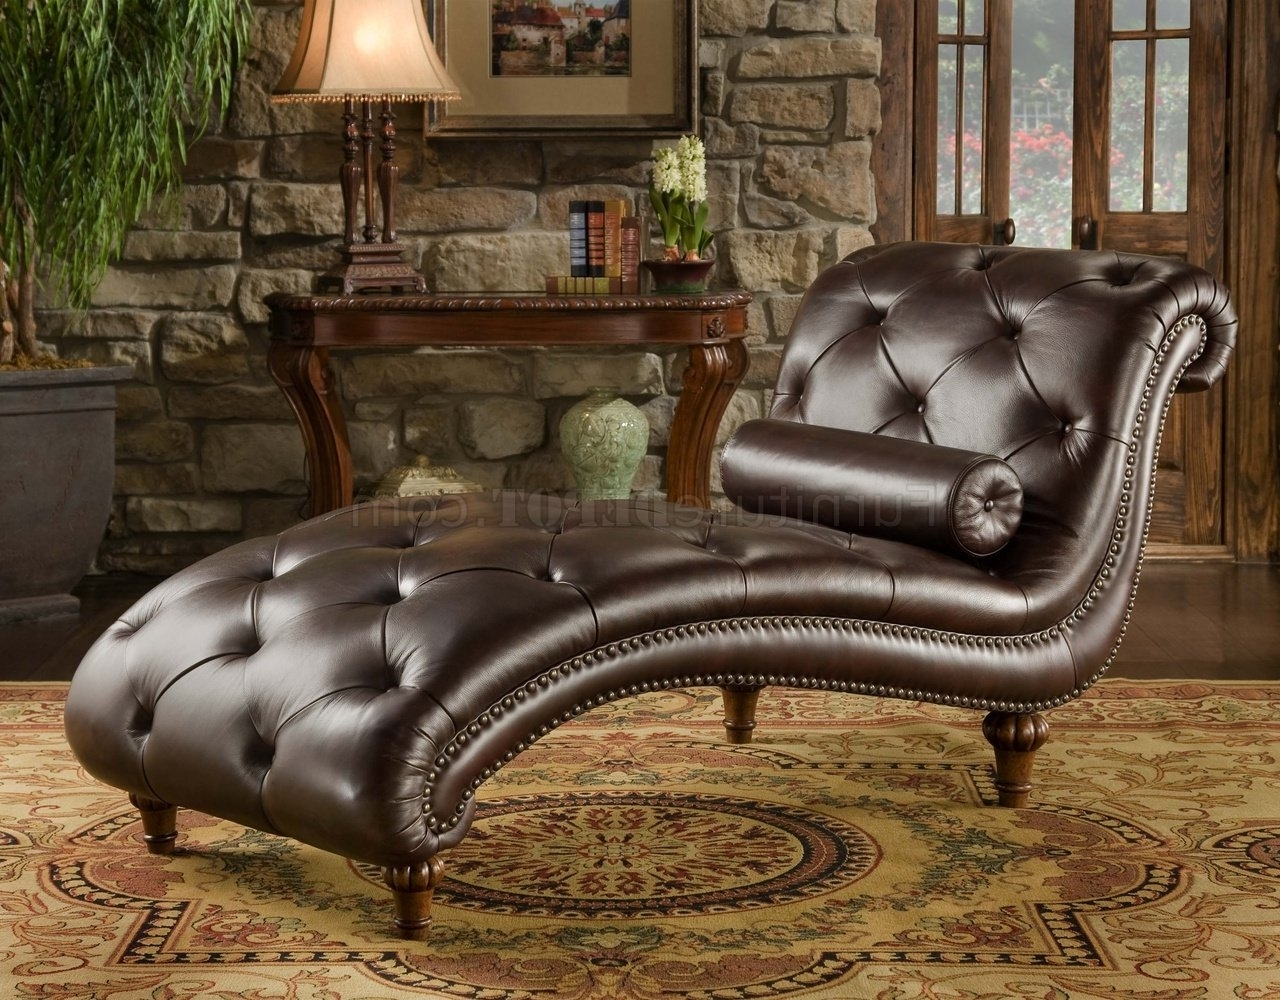 Brown Leather Chaise Lounge Within Most Up To Date Brown Leather Chaises (View 4 of 15)